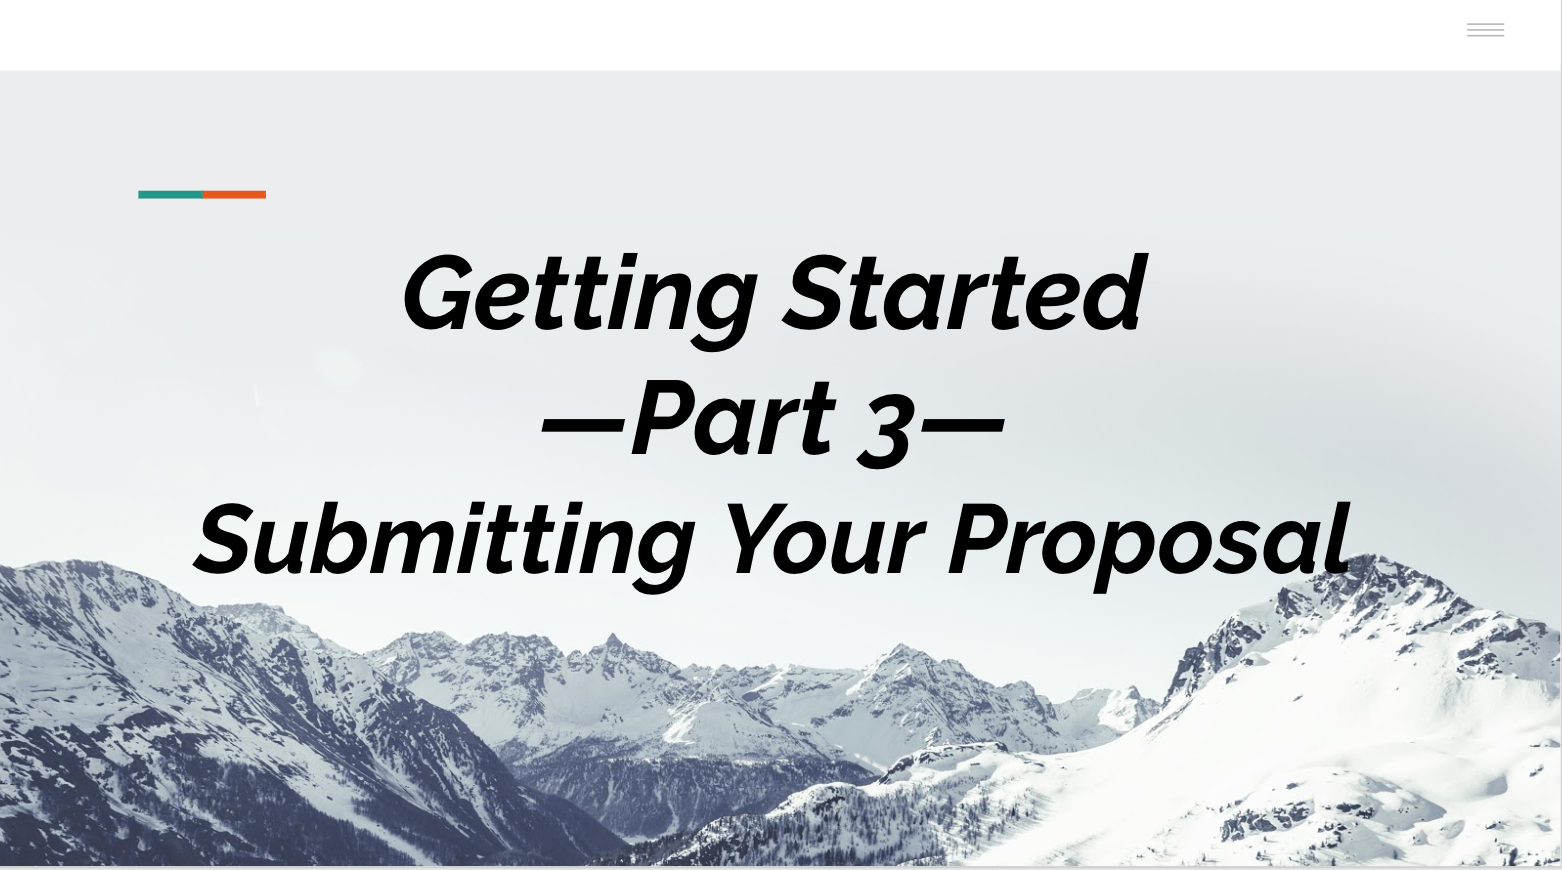 Part III: Getting Started